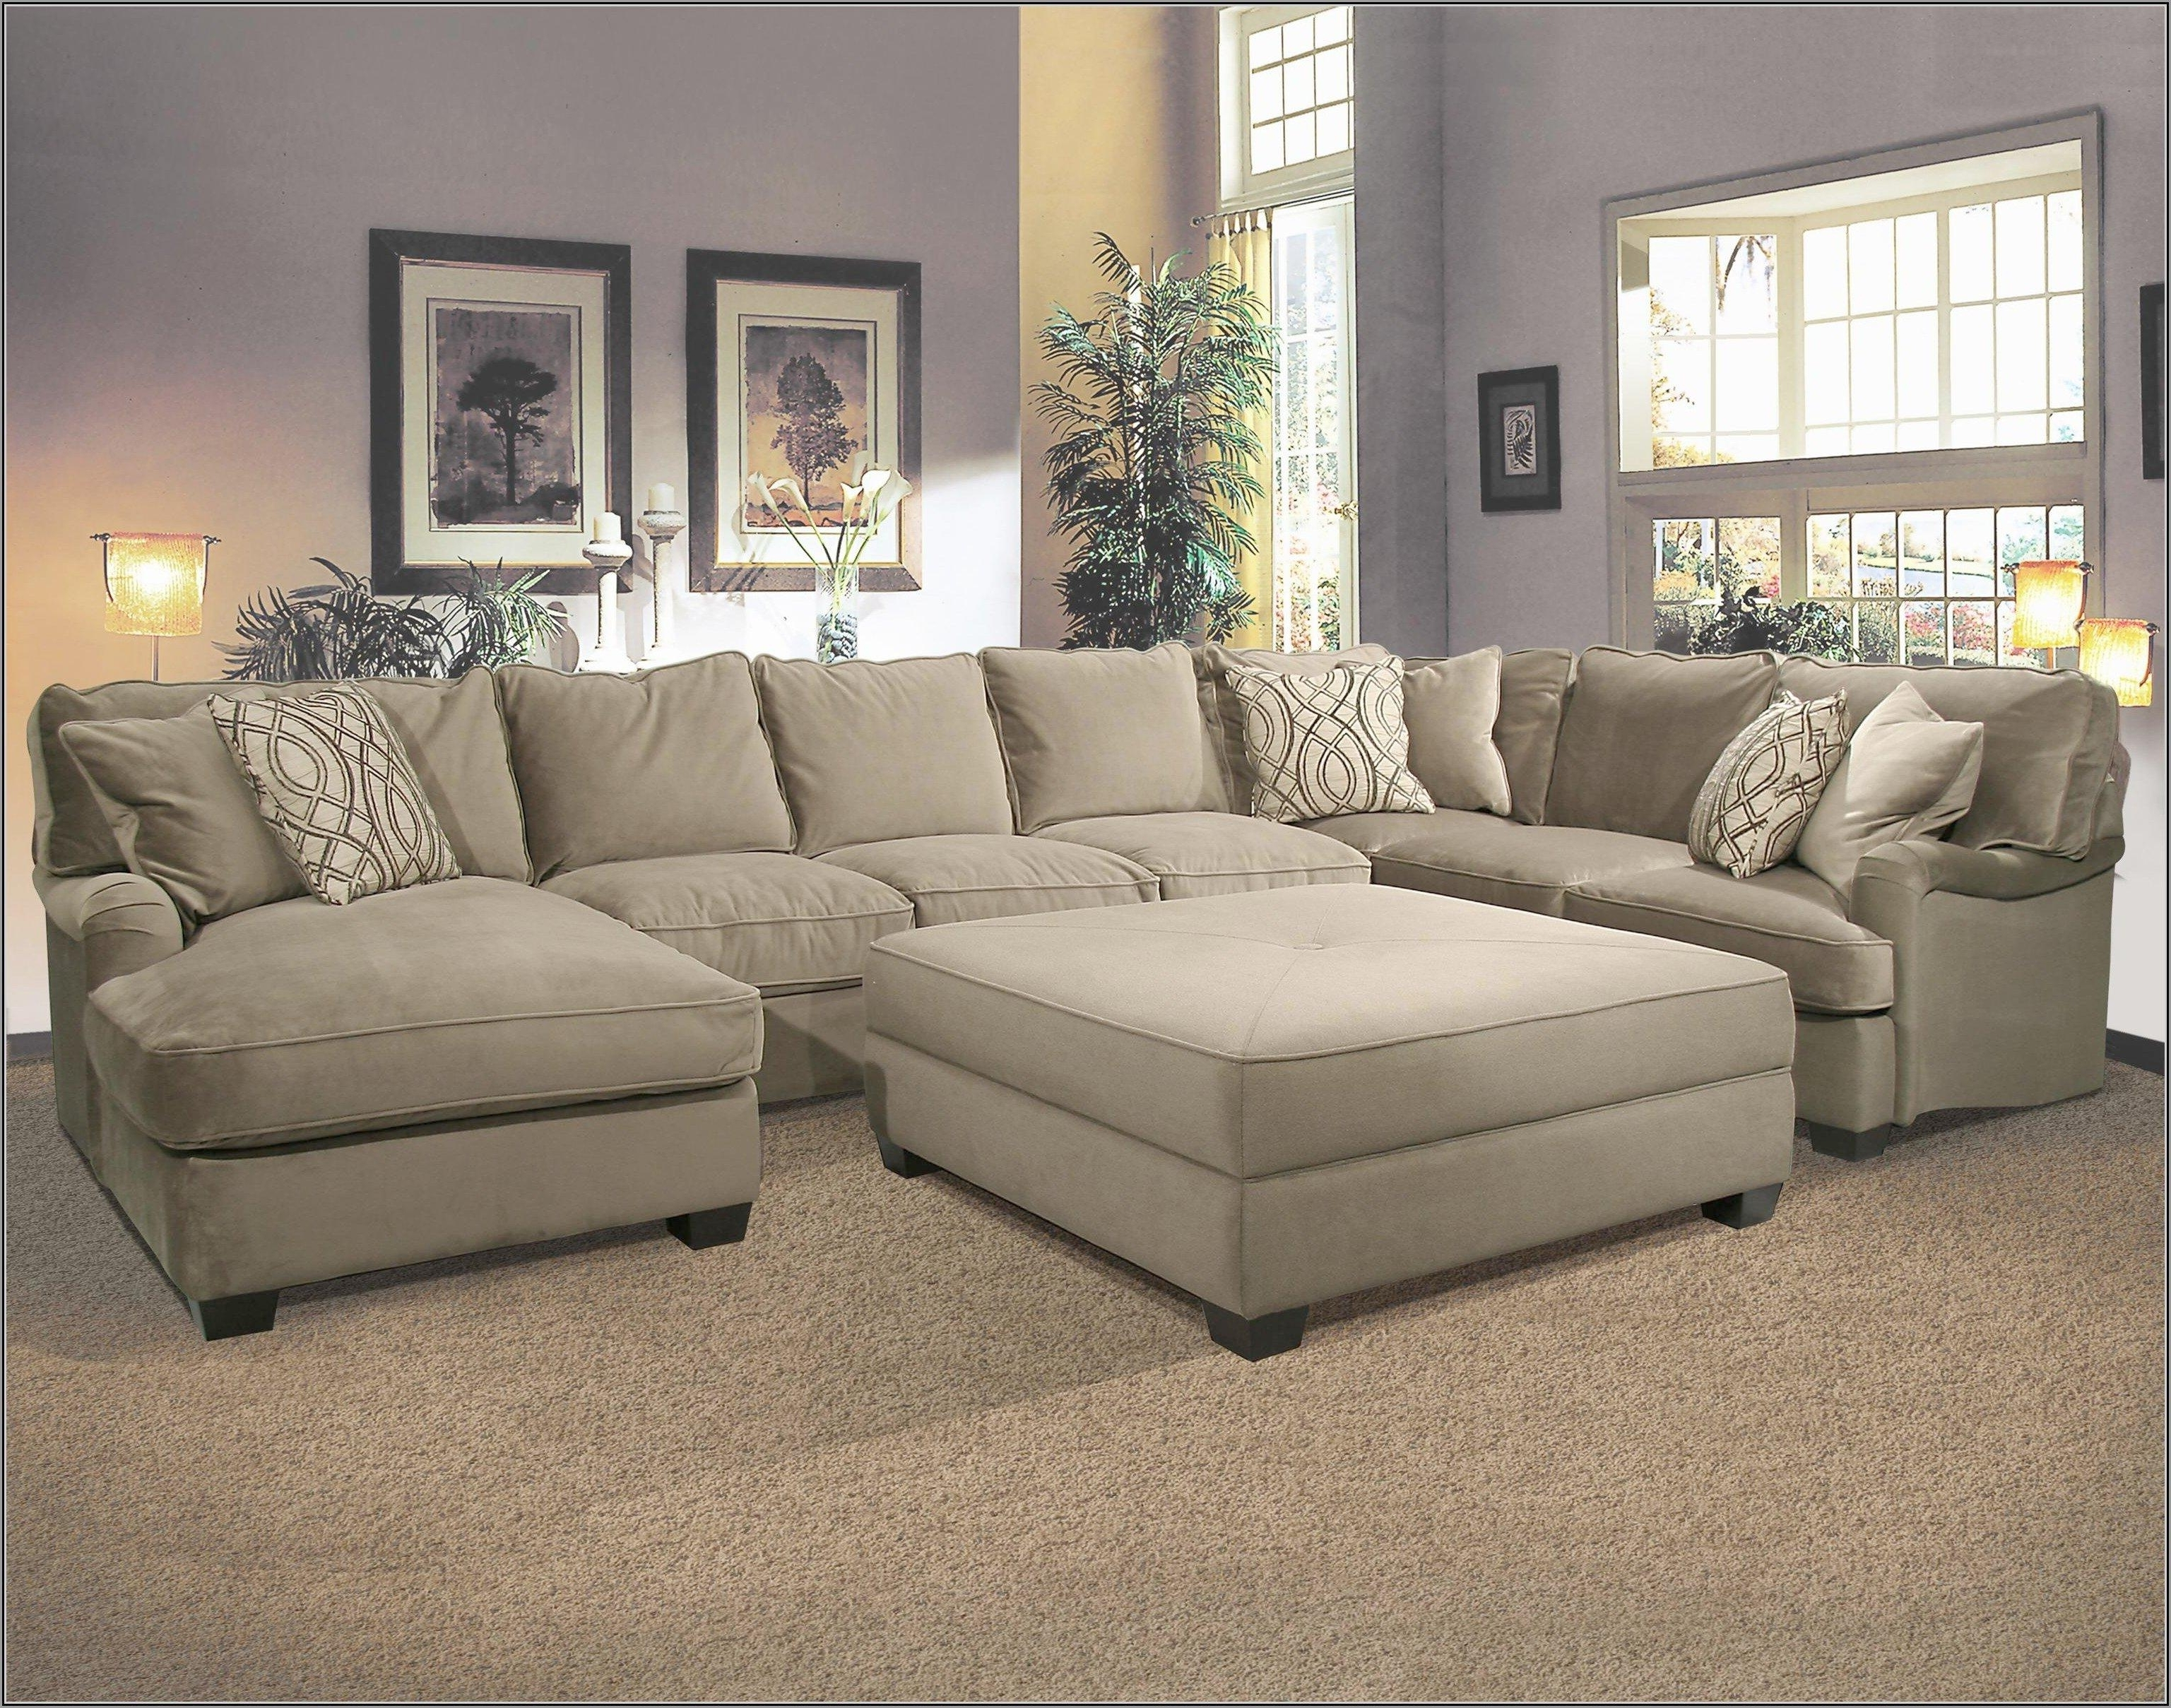 Sofa : Deep Seated Sectional New Sectional Sofa With Ottoman Deep Pertaining To Widely Used Sectional Sofas That Can Be Rearranged (View 16 of 20)